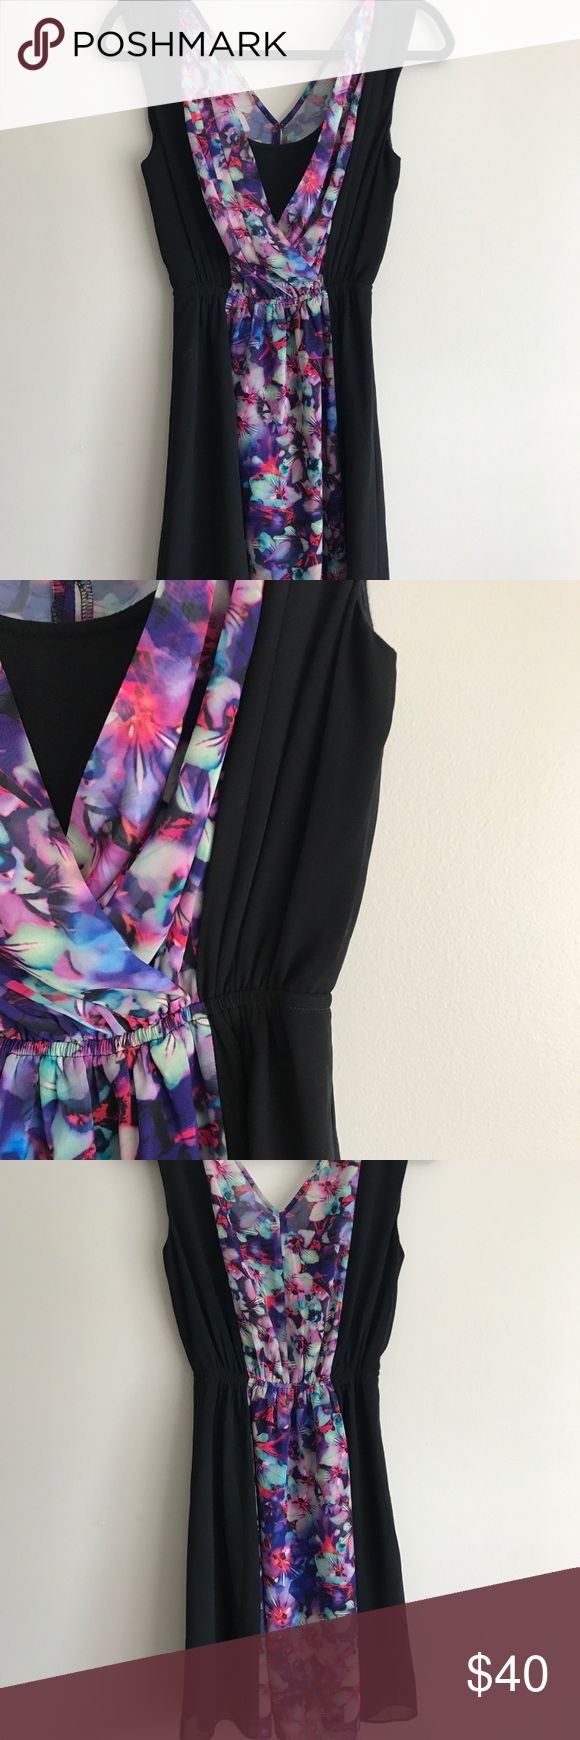 Express Flower Dress Beautiful dress great for spring. Worn once to an event!  ✨Open to offers ✨ 🌟I ship either that day or the next🌟 Express Dresses